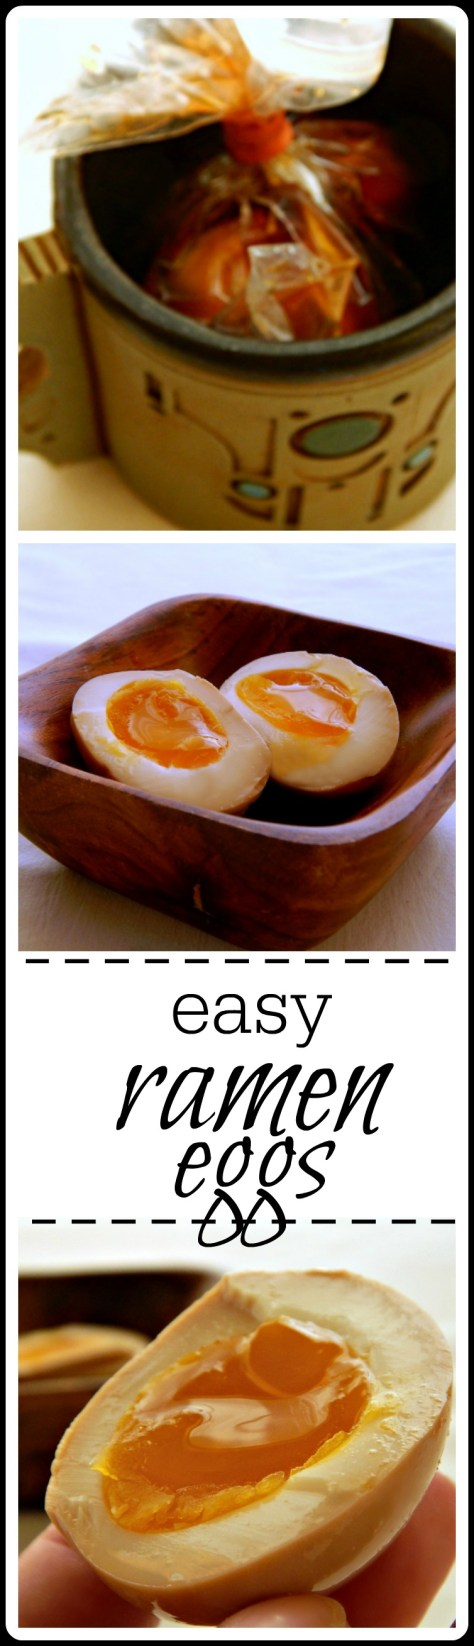 Easy Ramen Eggs: Soft boil, peel & soak. So good and super special.